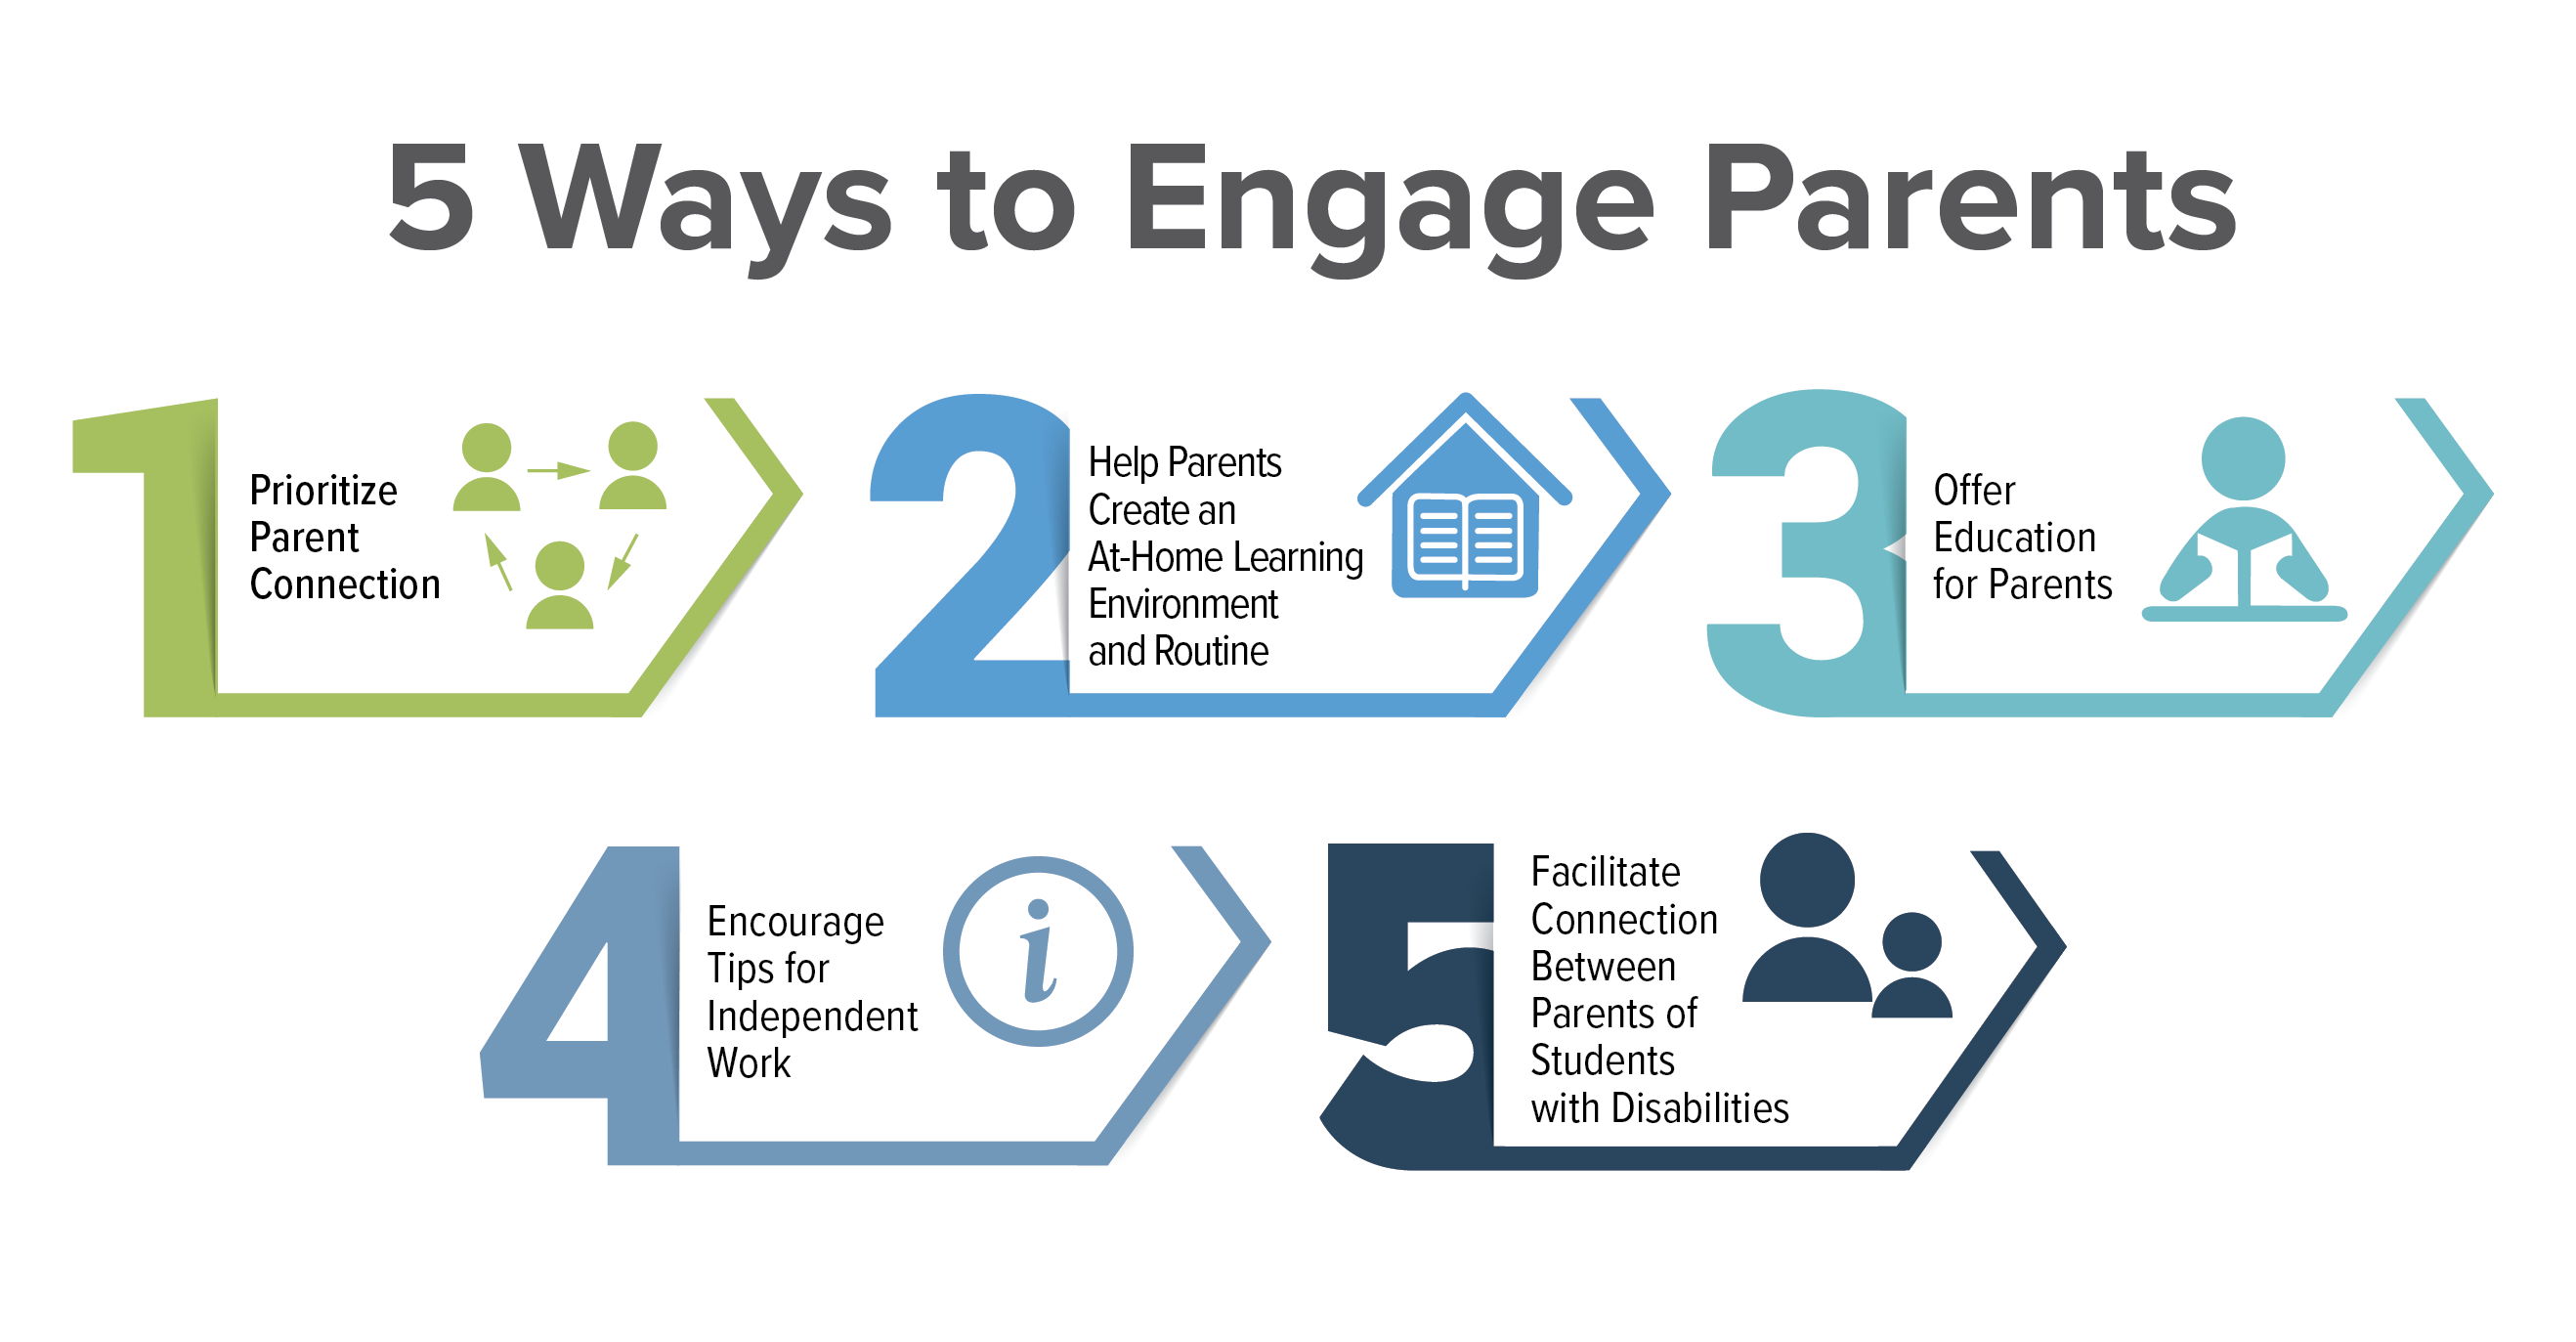 5 ways to engage Parents